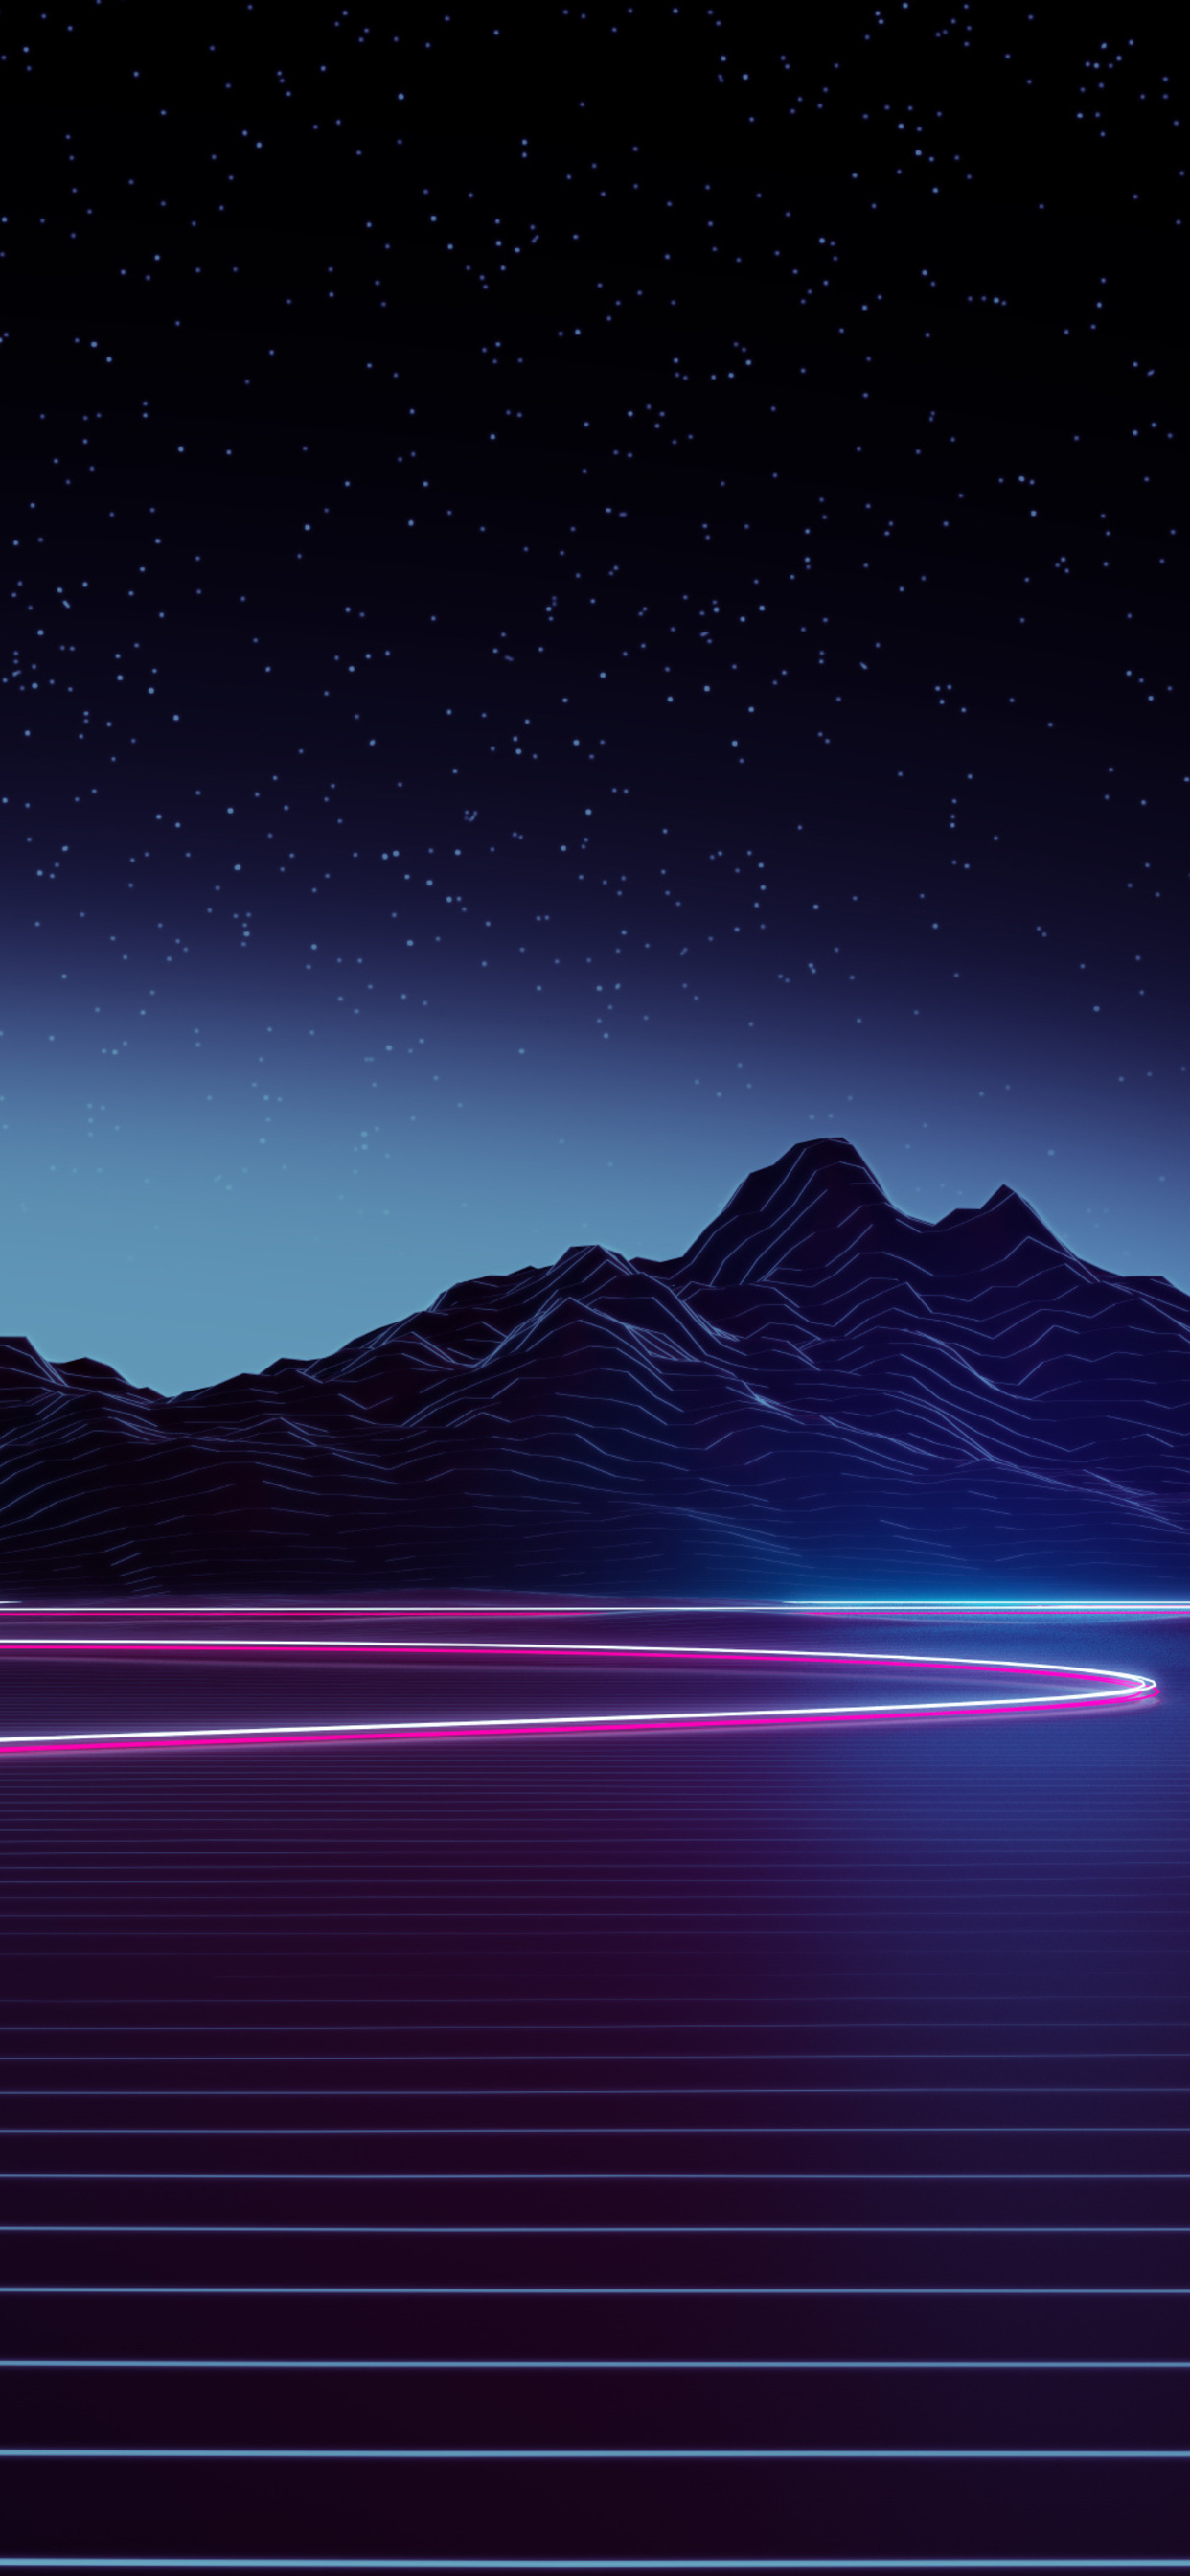 1242x2688 Neon Highway 4k Iphone Xs Max Hd 4k Wallpapers Images